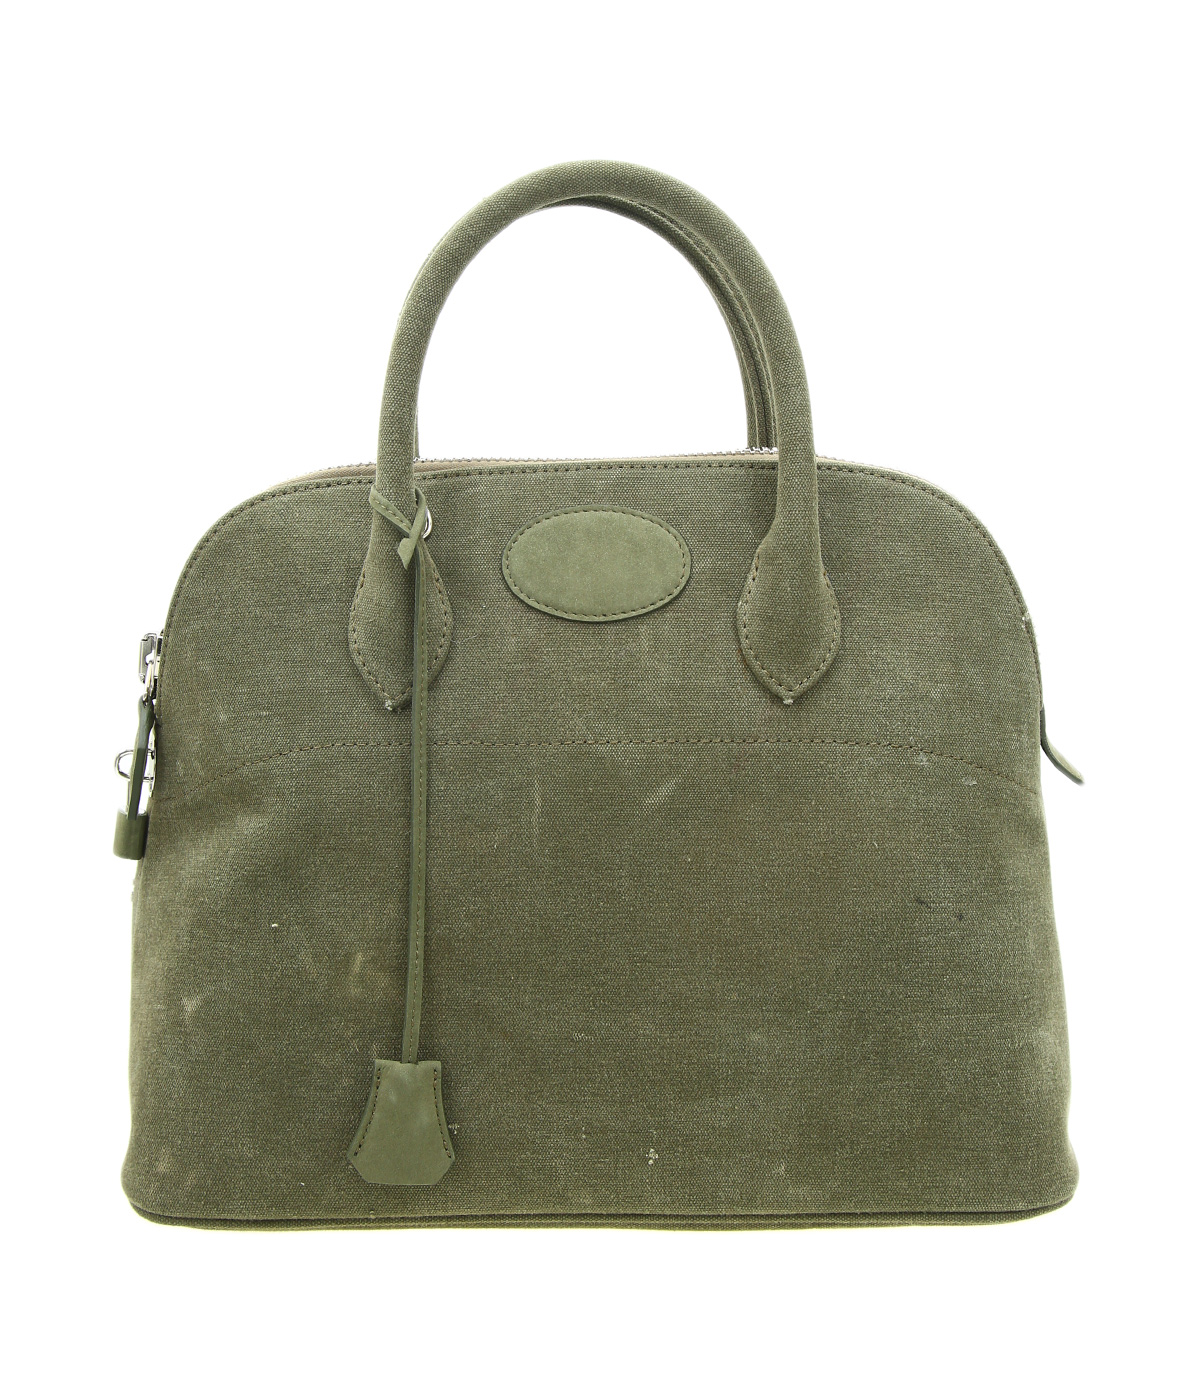 DAILY BAG(MEDIUM) -Type B-